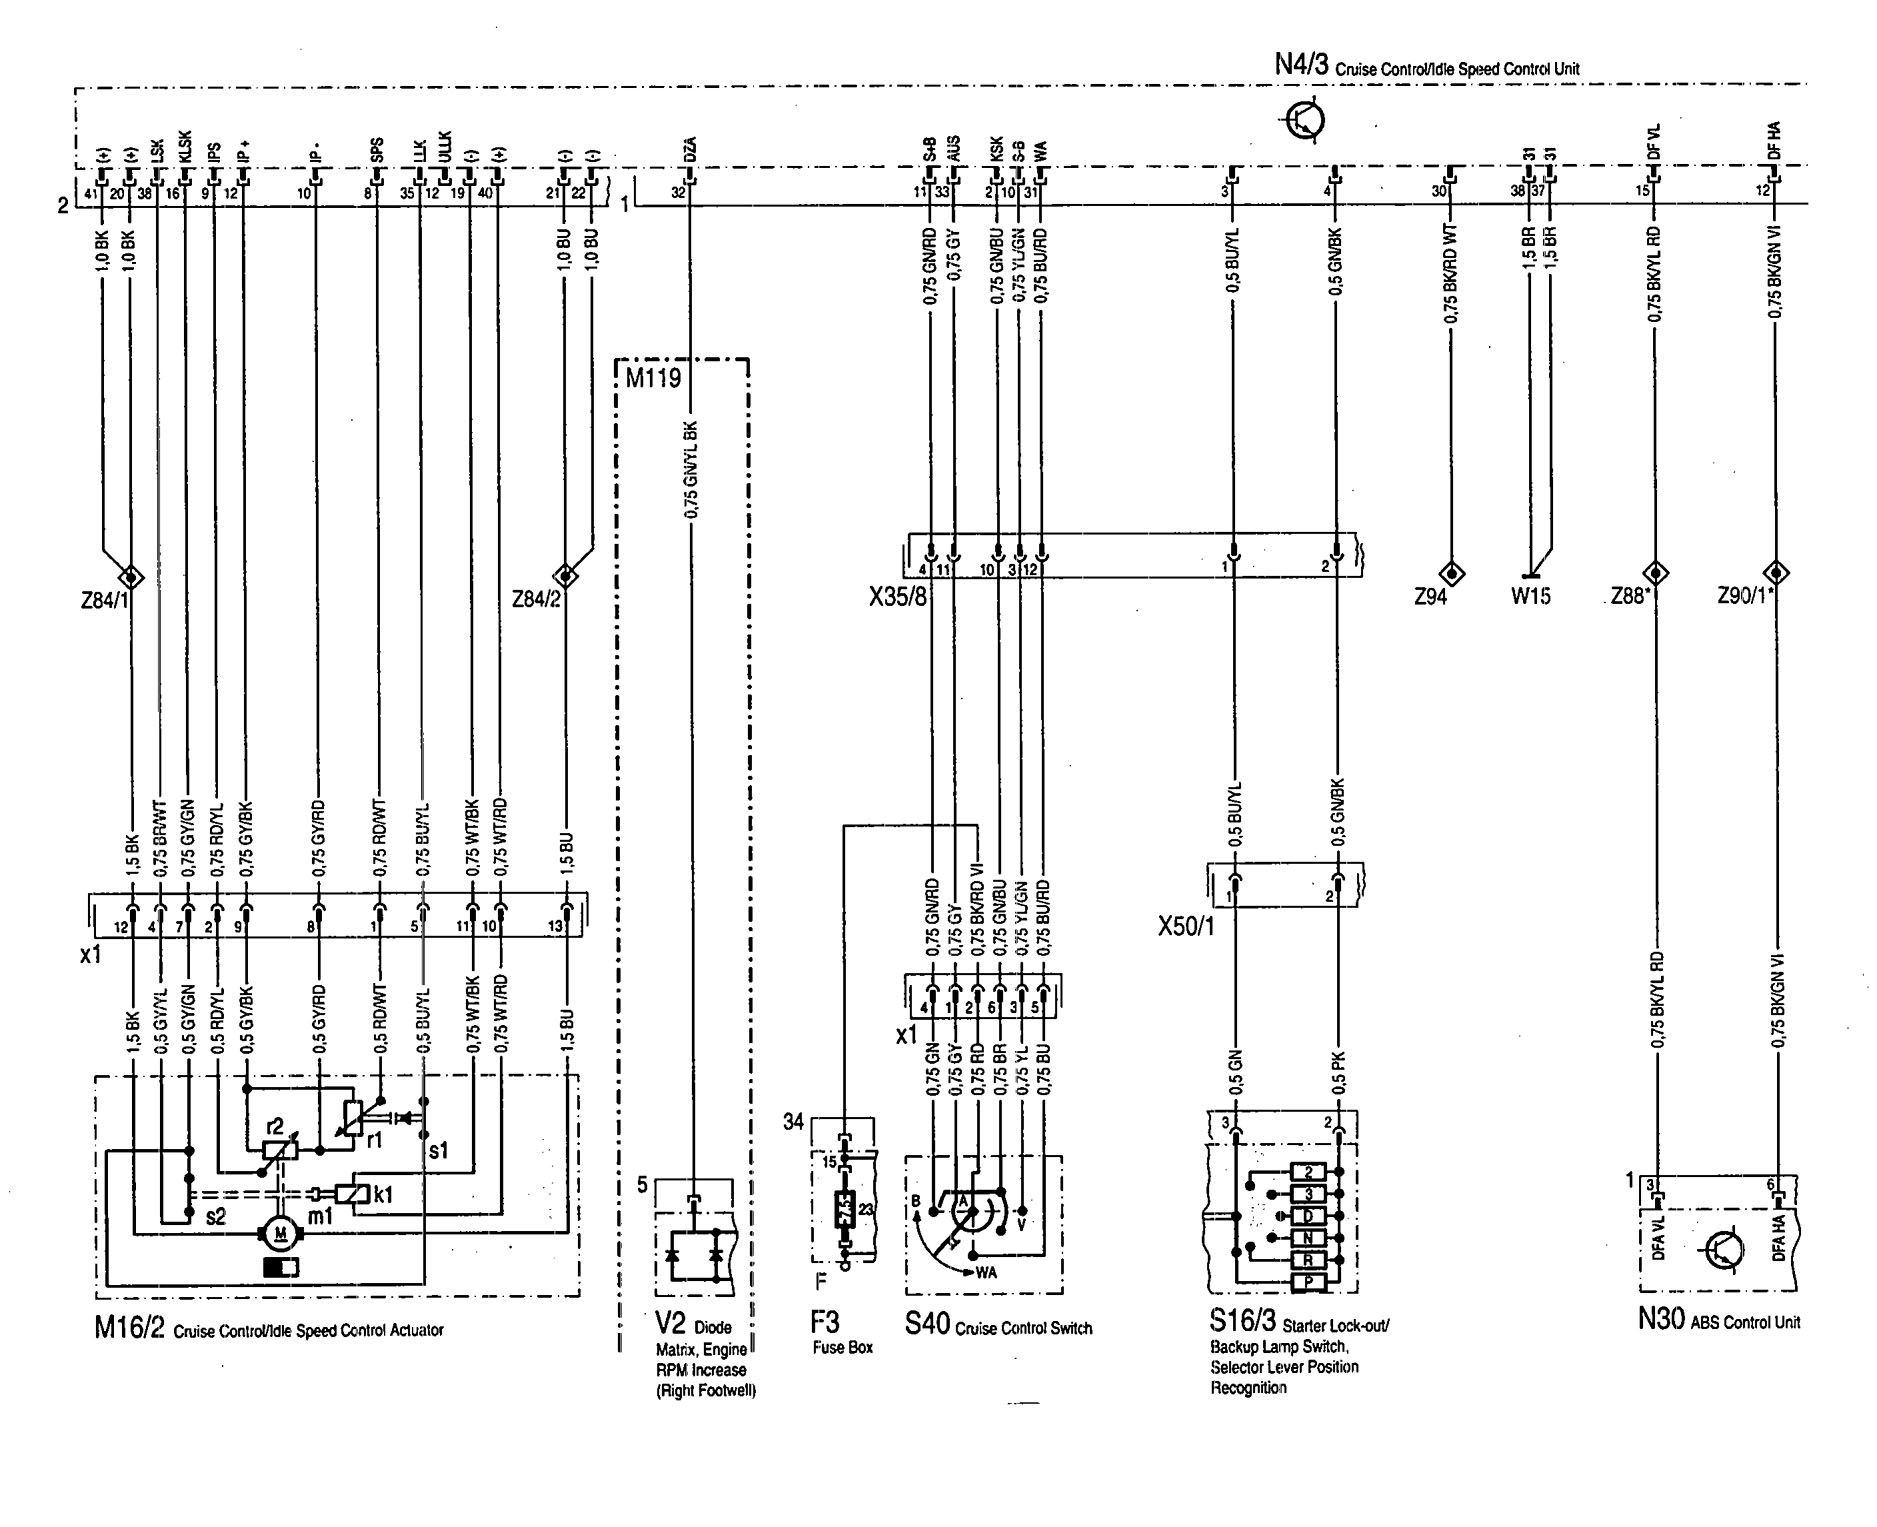 Mercedes C280 Engine Diagram Wiring Library Benz Se Diagrams Speed Controls Carknowledge Info E